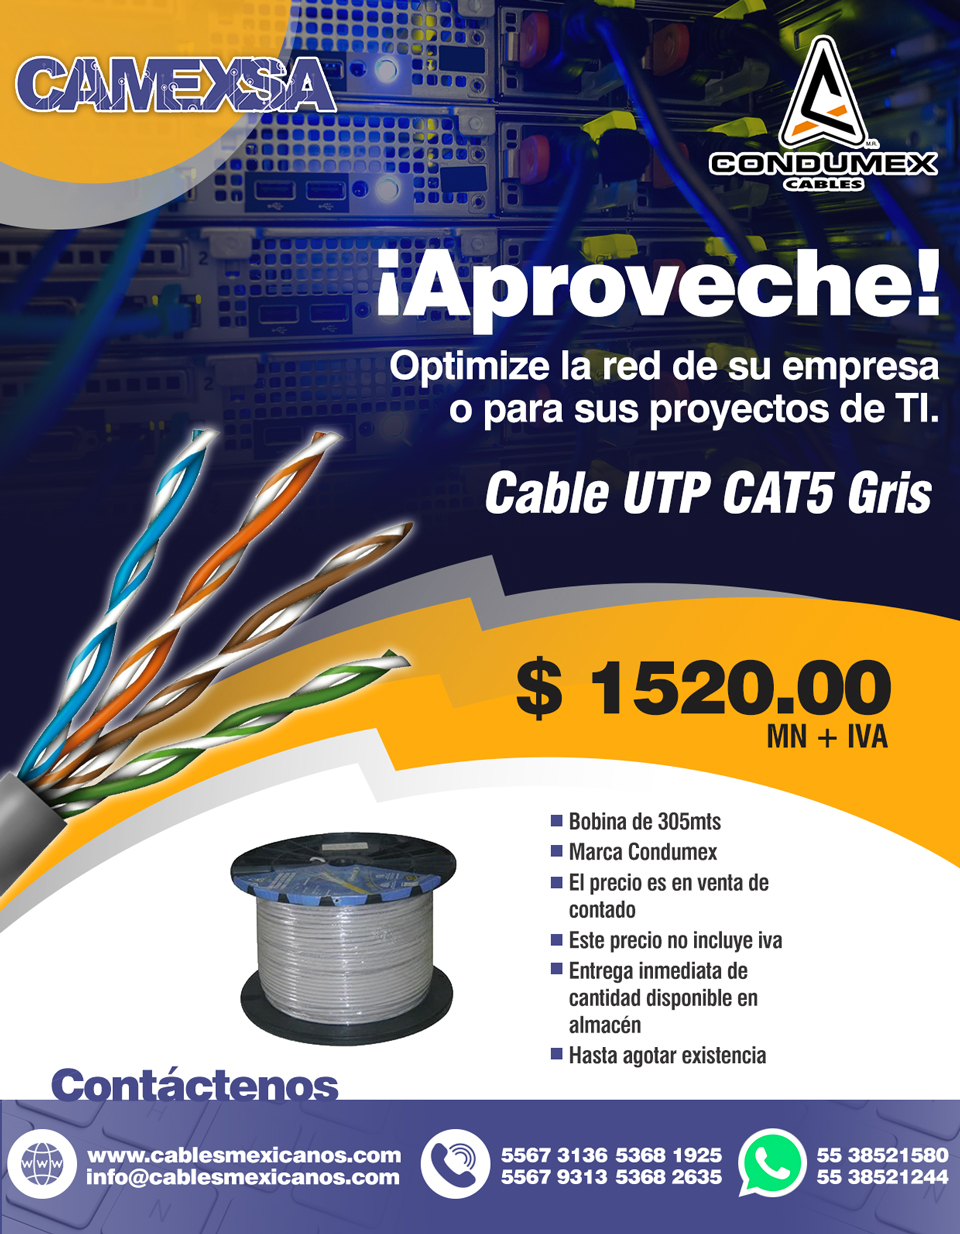 Cable UTP CAT5 Condumex